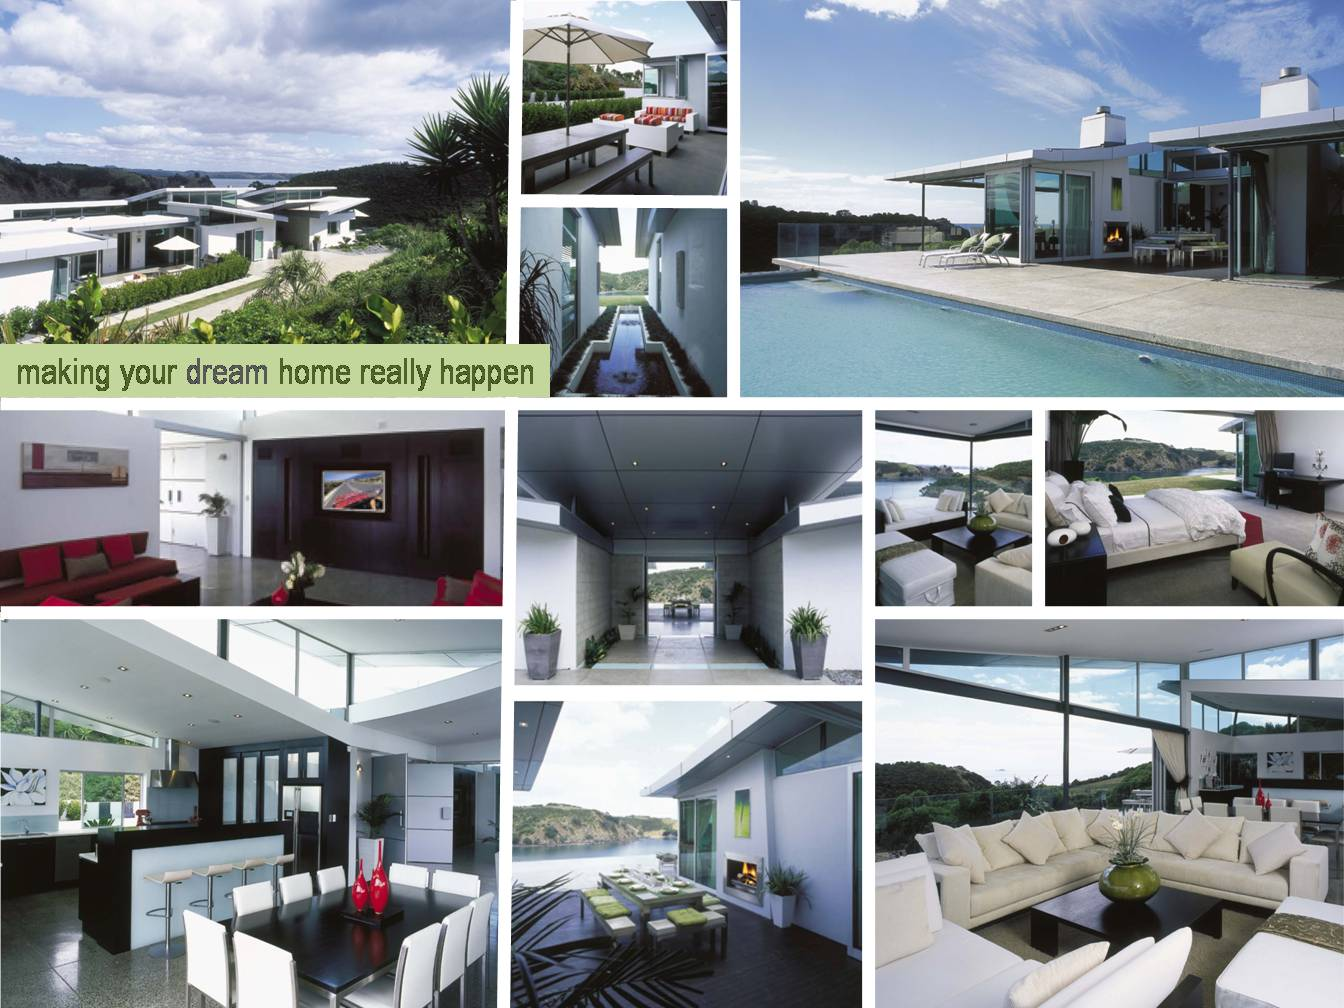 House Architects house architects home architects architect houses homes waiheke